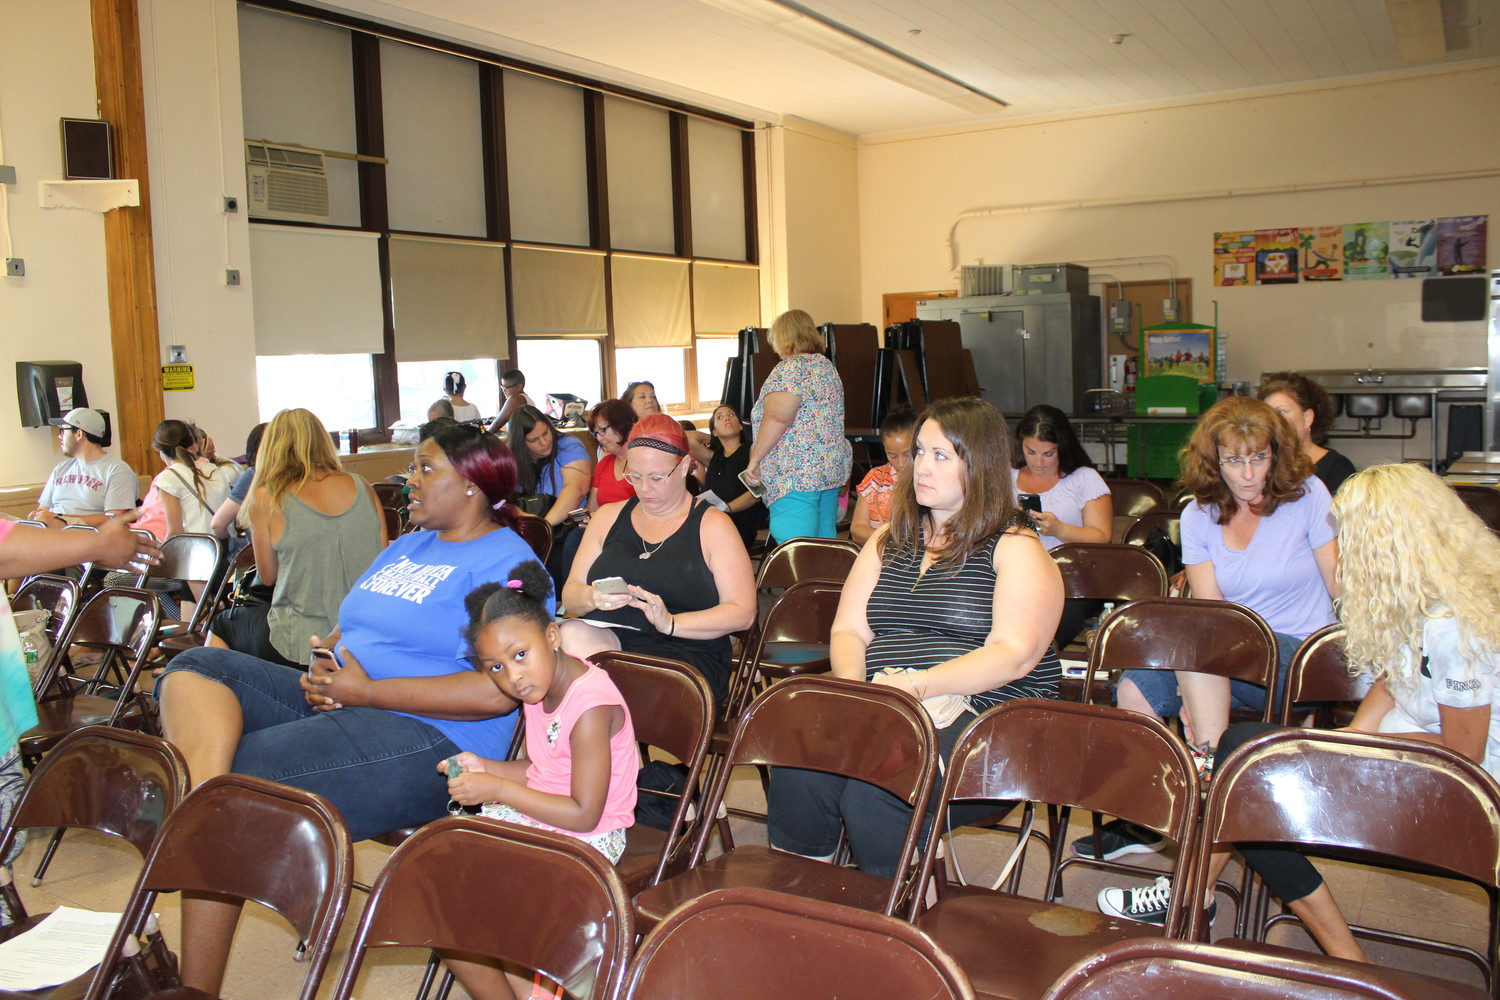 Residents waited almost an hour for District 24's Board of Education meeting to begin.